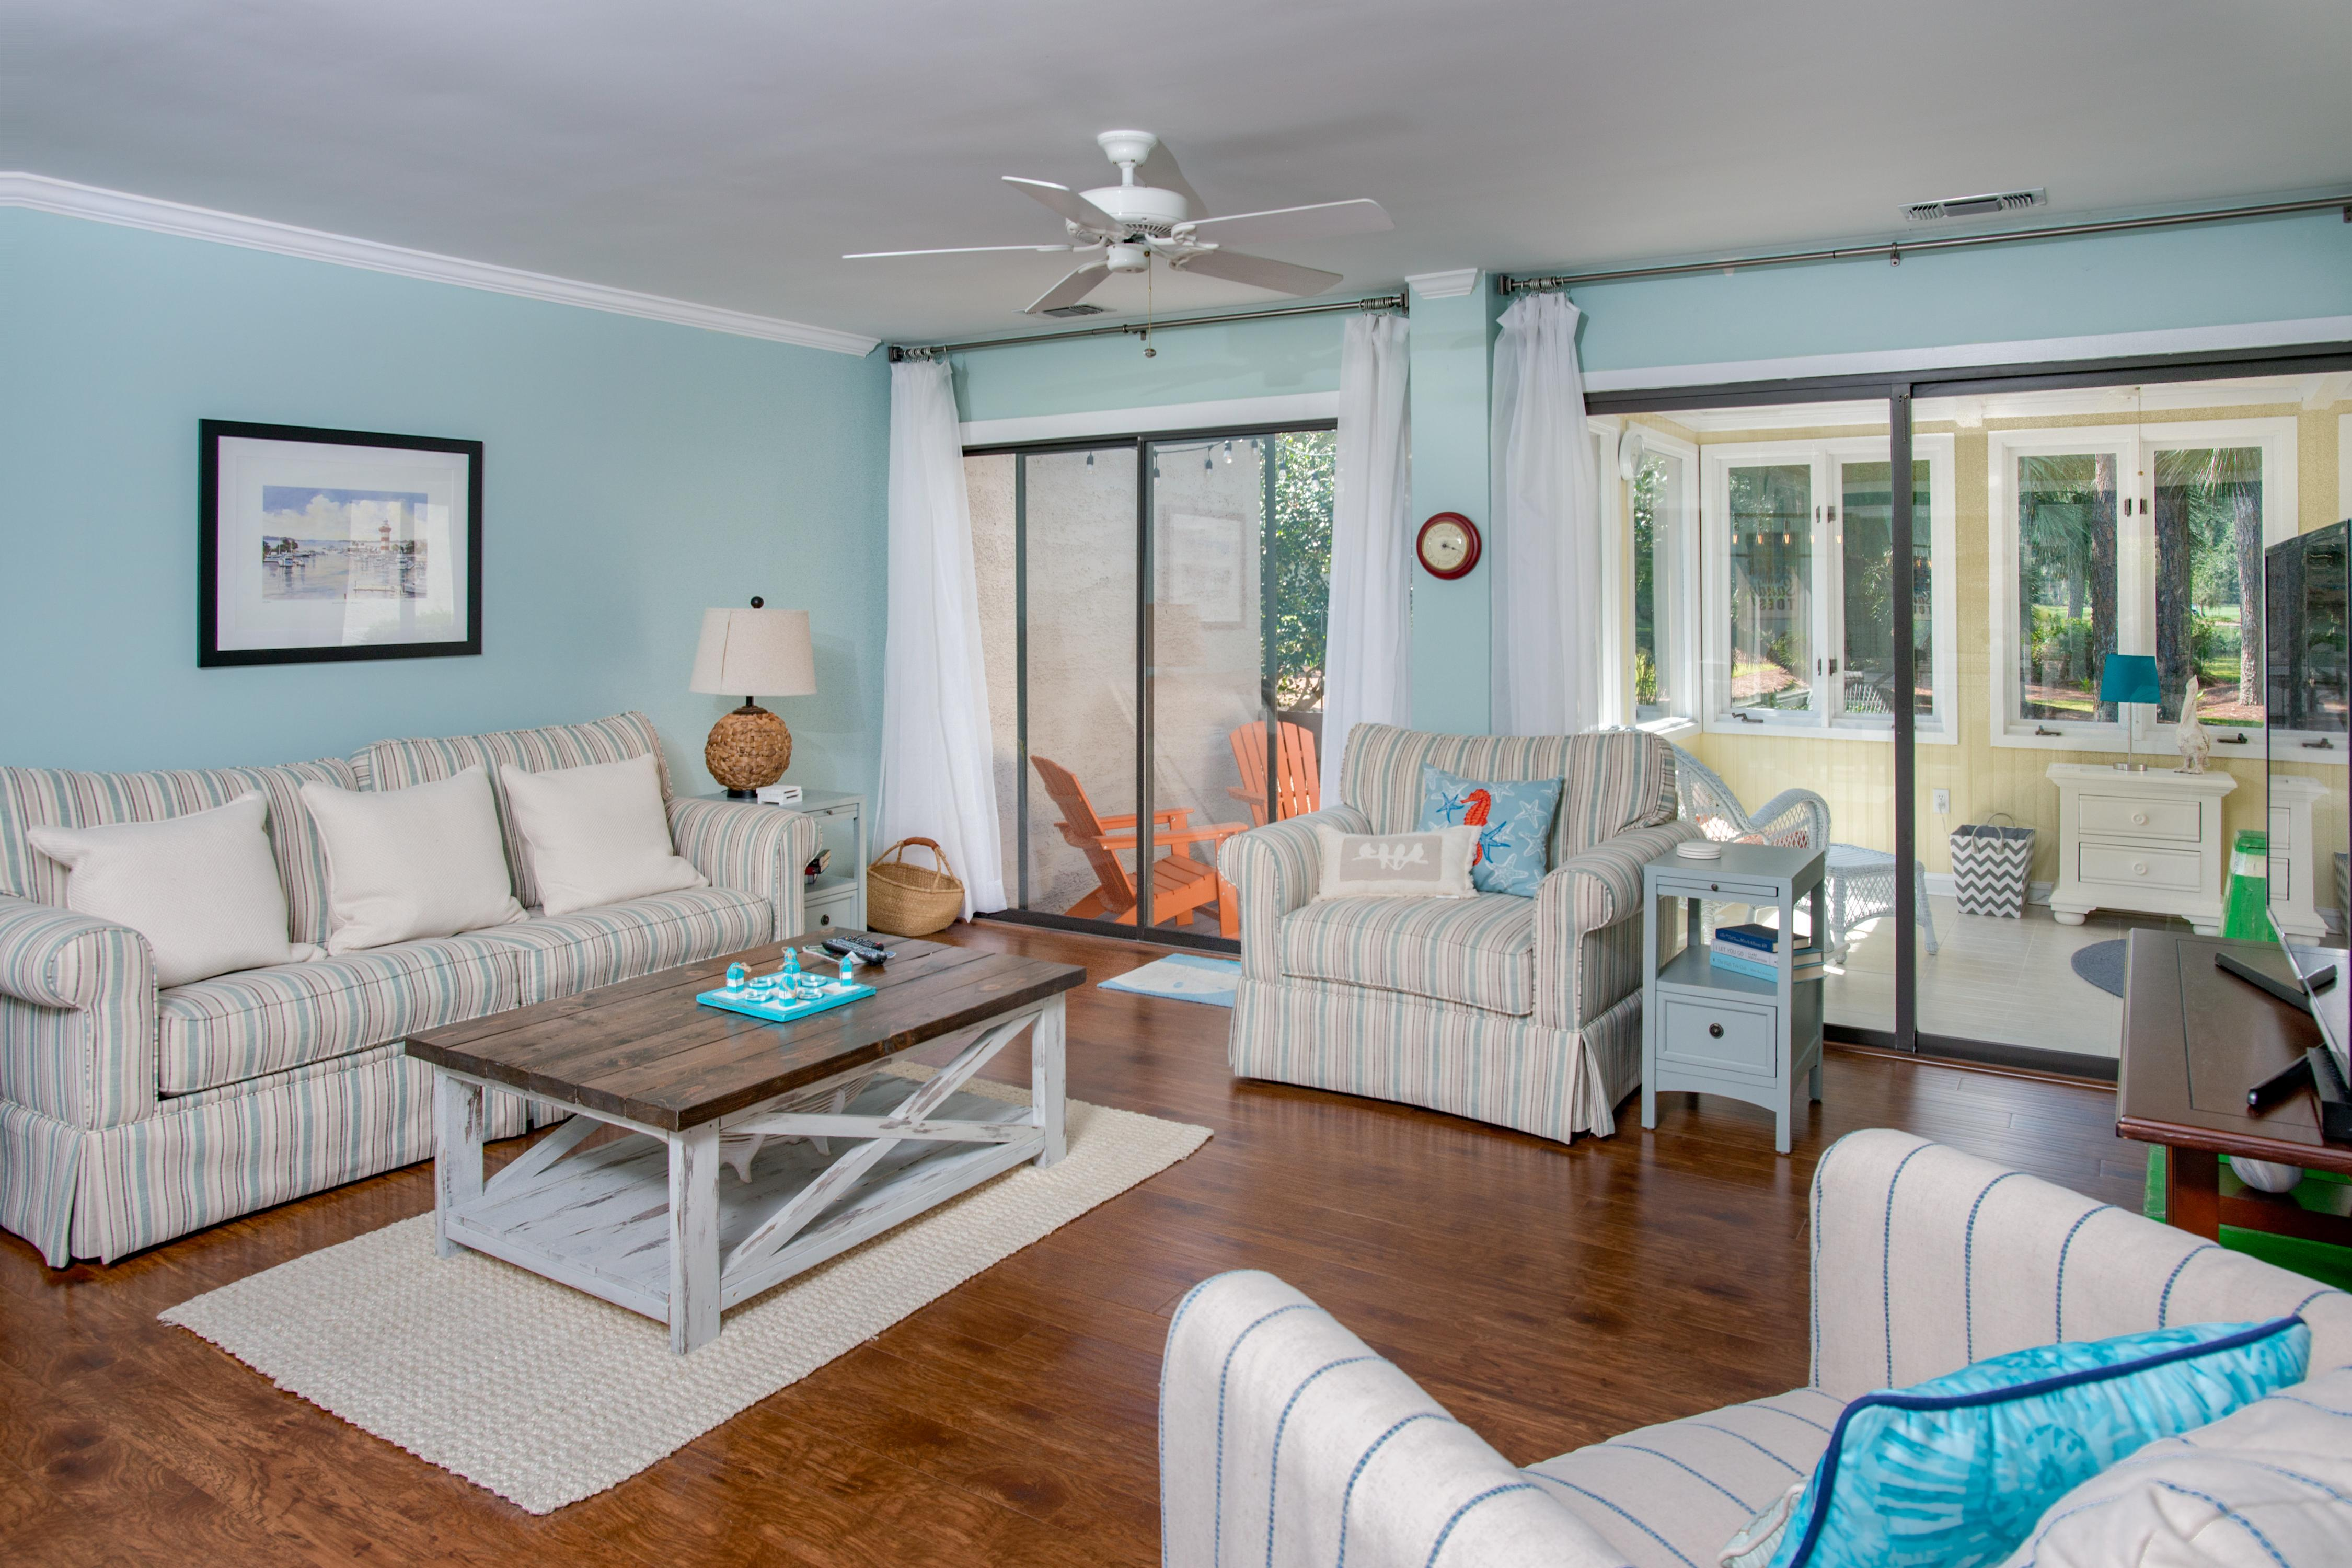 Welcome to Hilton Head Island! This villa is professionally managed by TurnKey Vacation Rentals.